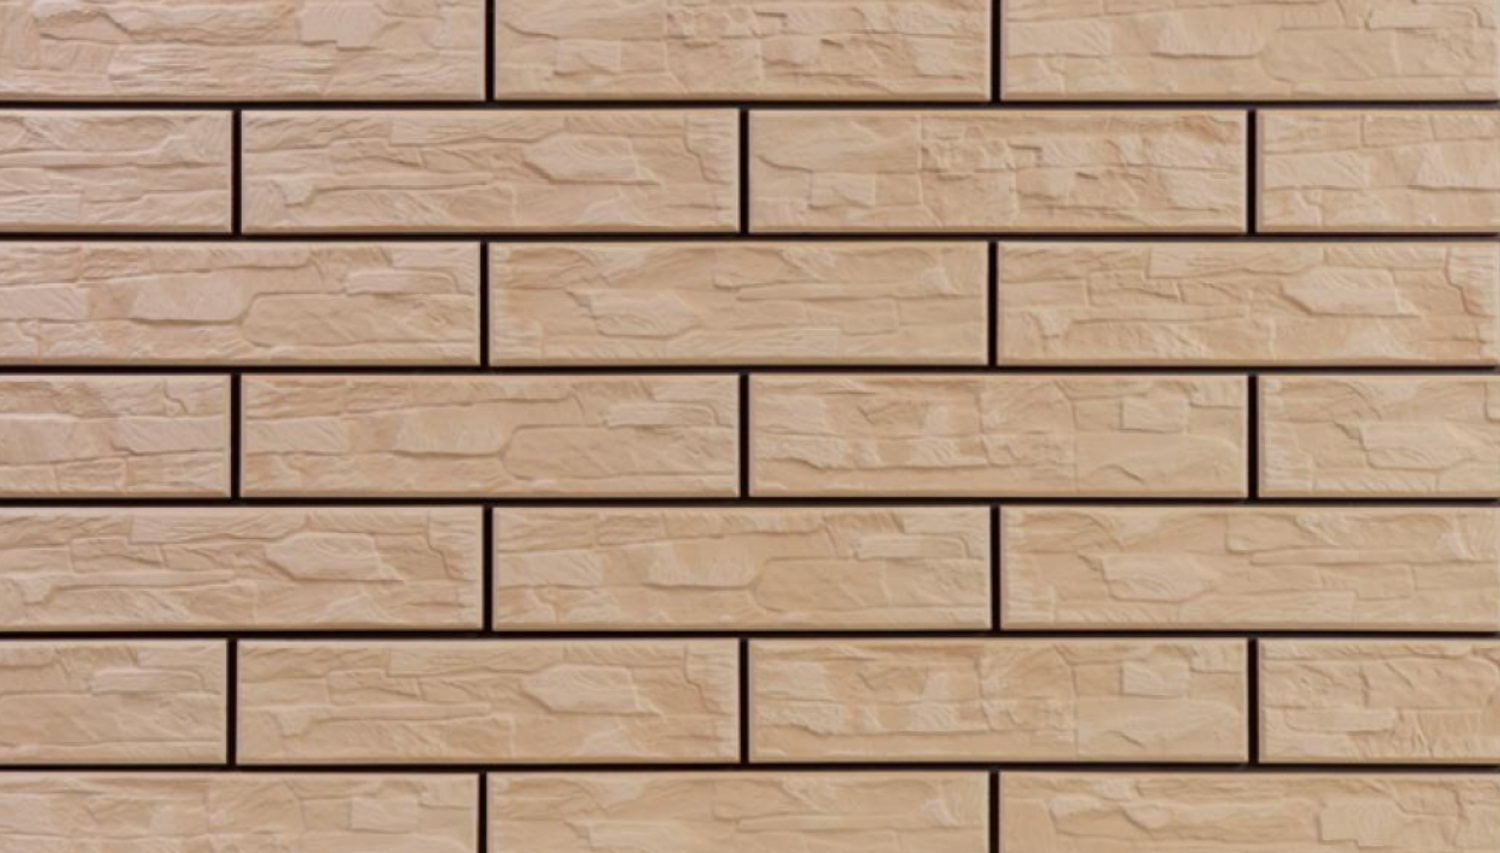 Images of Seamless Brick Pattern - #rock-cafe